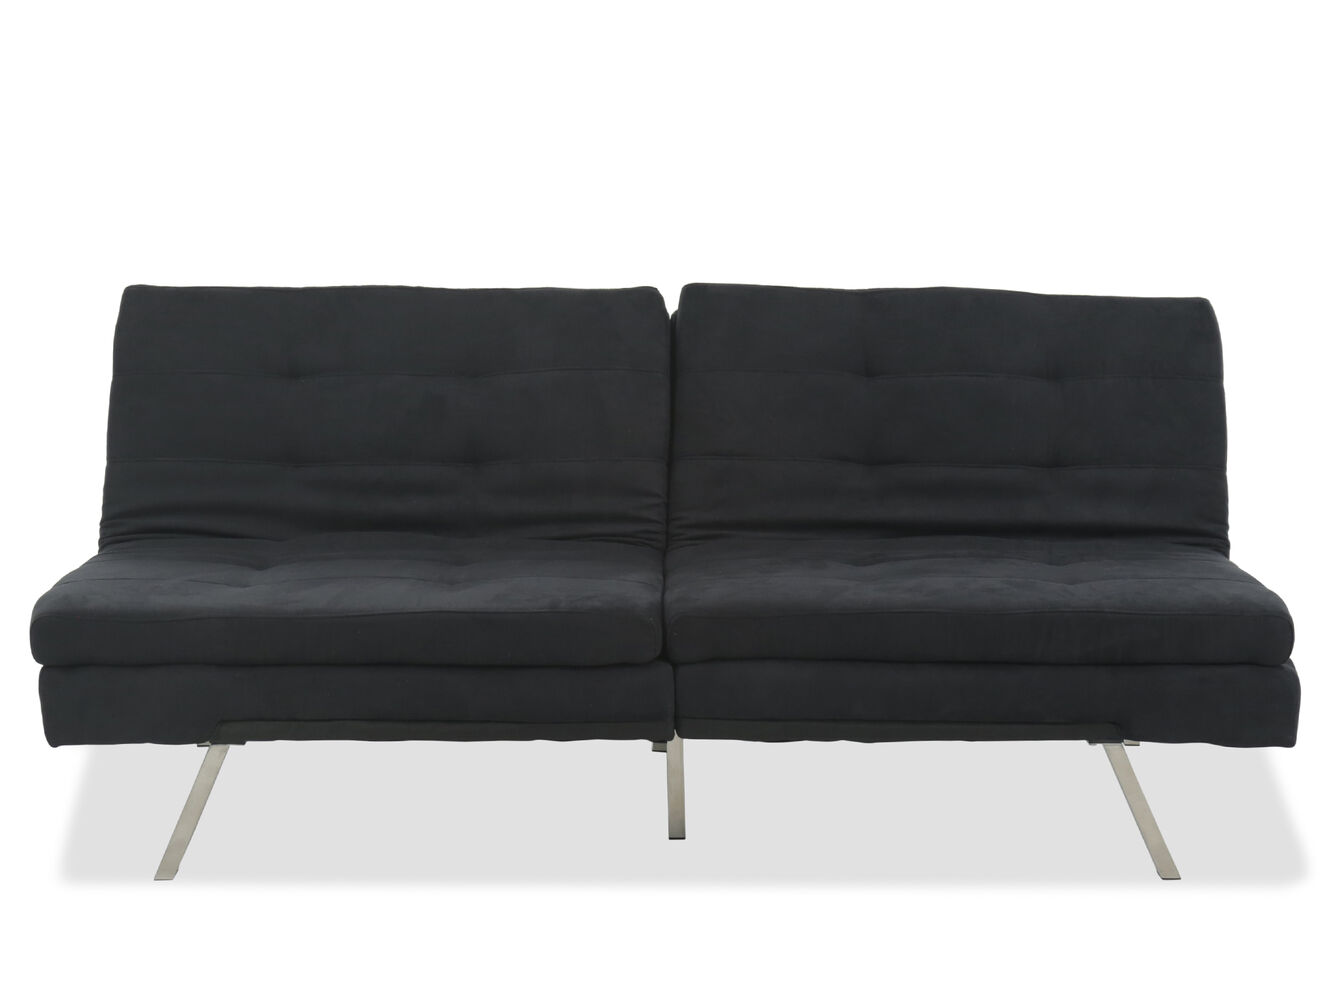 Microfiber Transitional 71 Convertible Sofa In Black Mathis Brothers Furniture